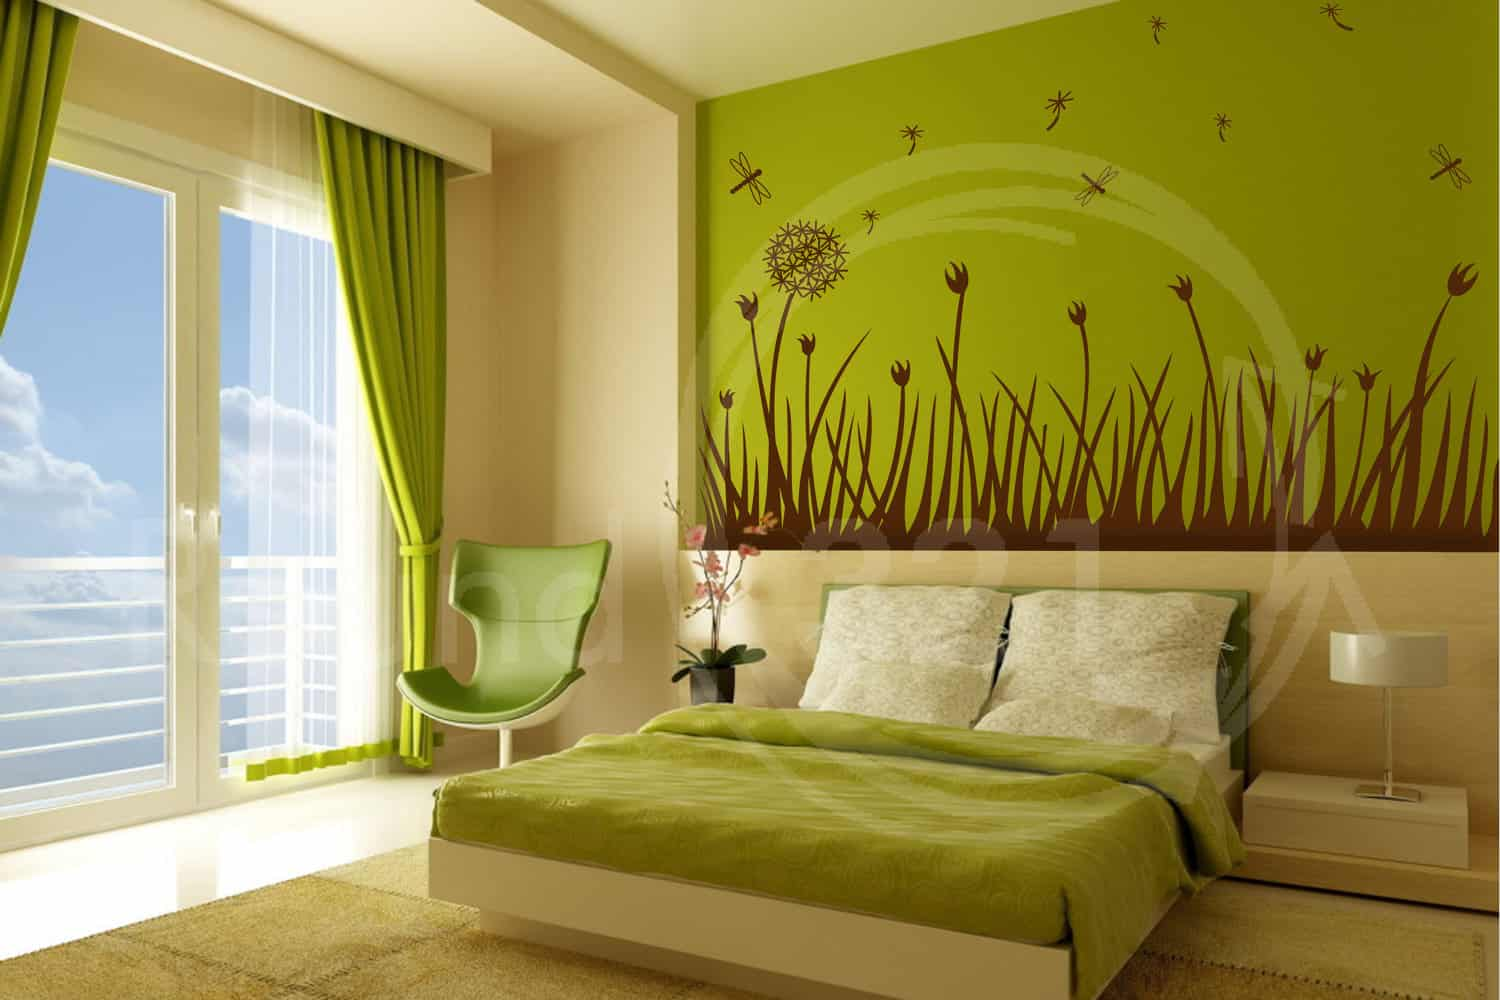 Best Dandelion Decor Home Decorating Trend Grows This Month